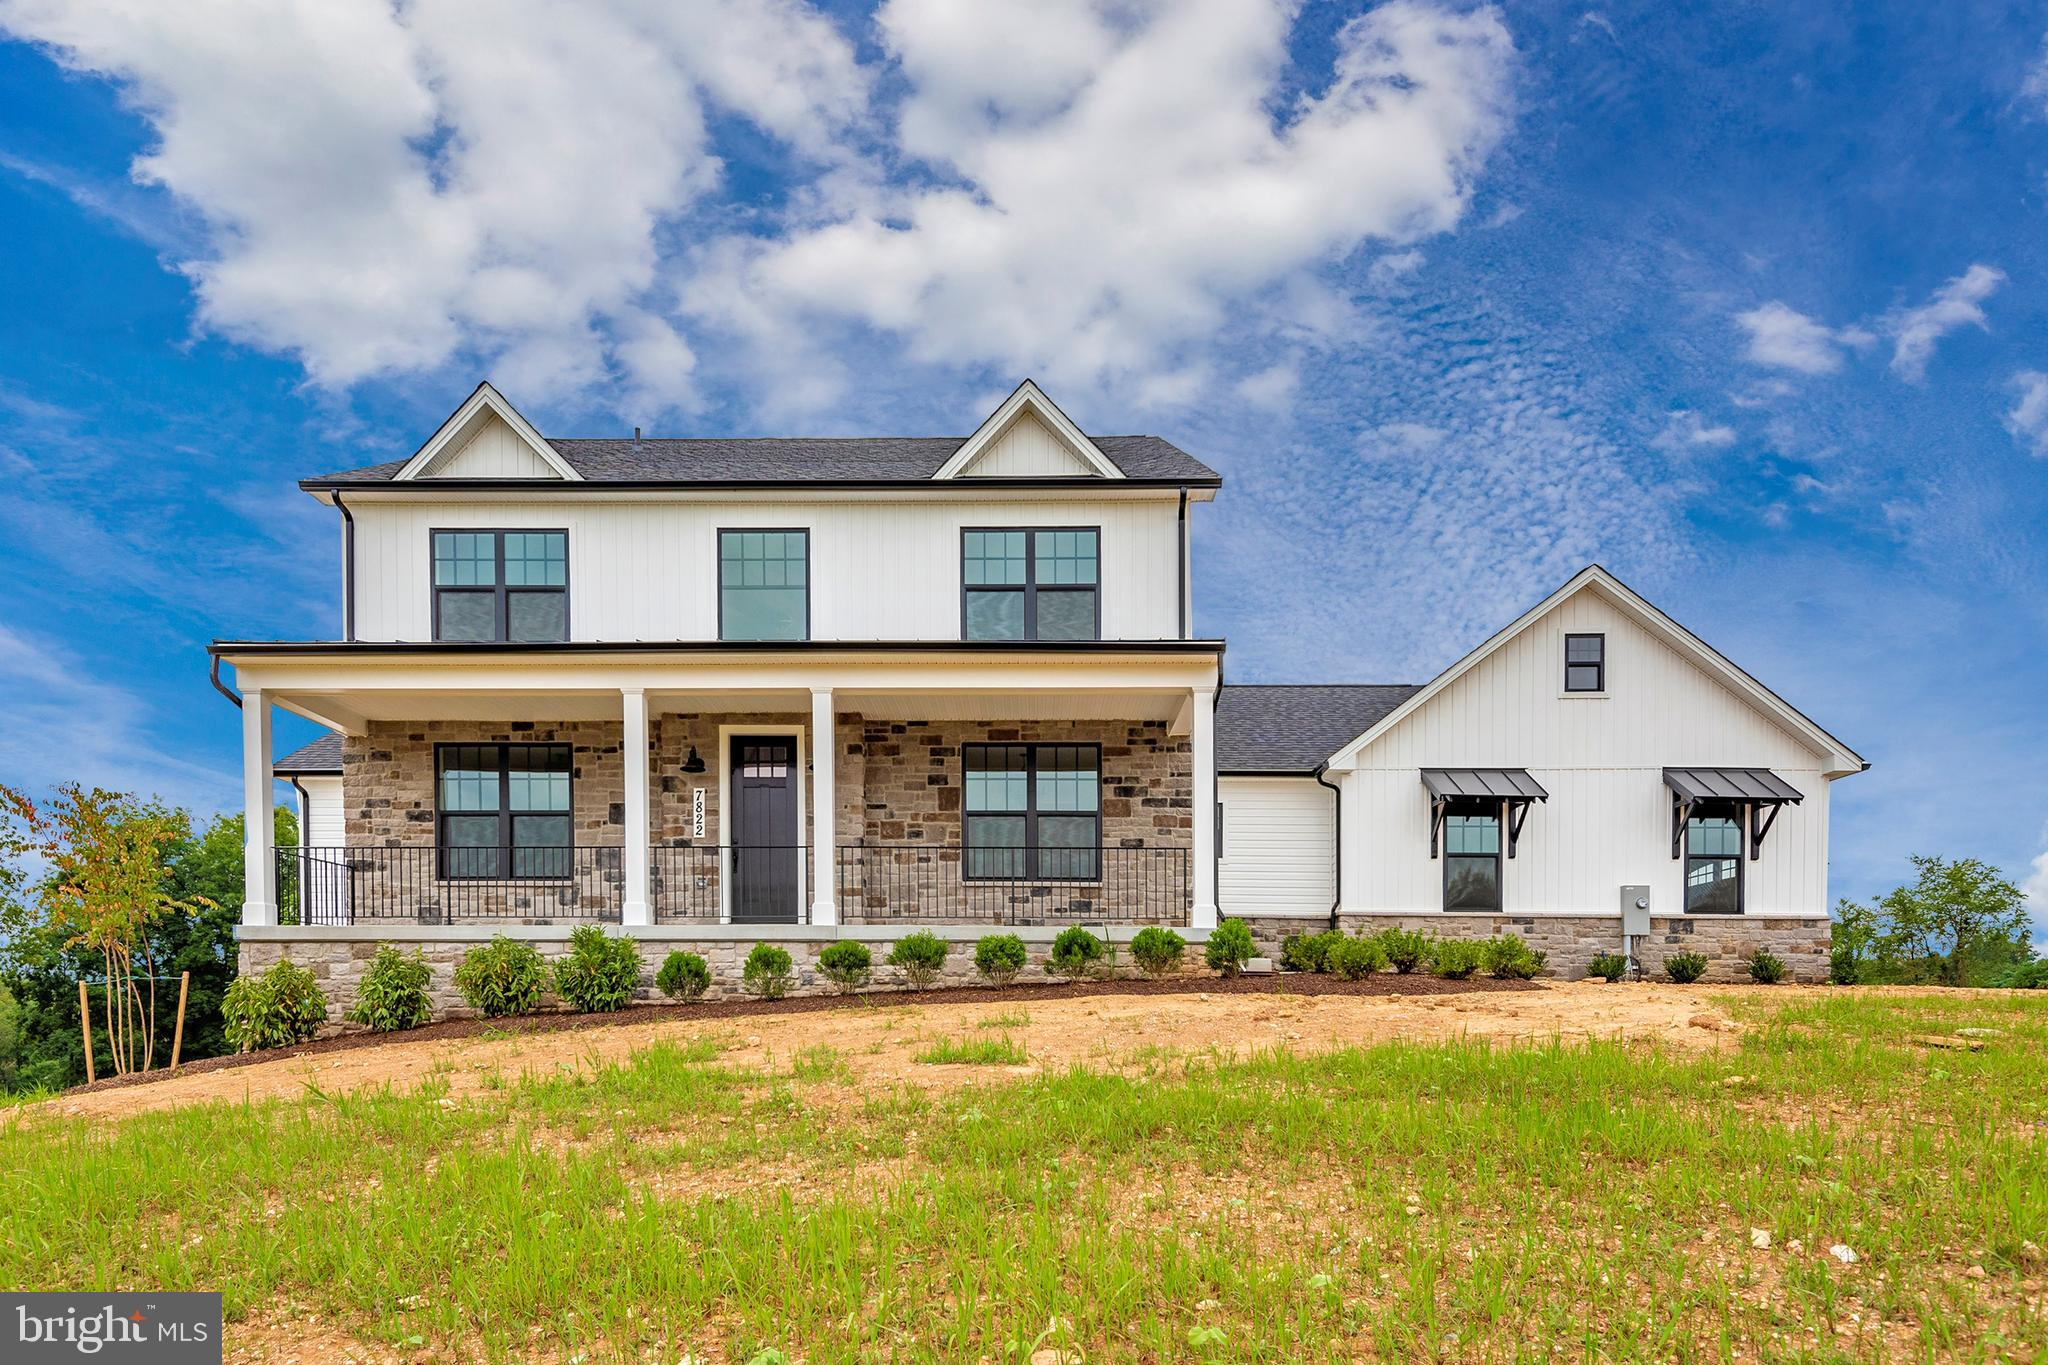 Envision yourself living in this beautiful custom home.  Construction is complete and ready for move